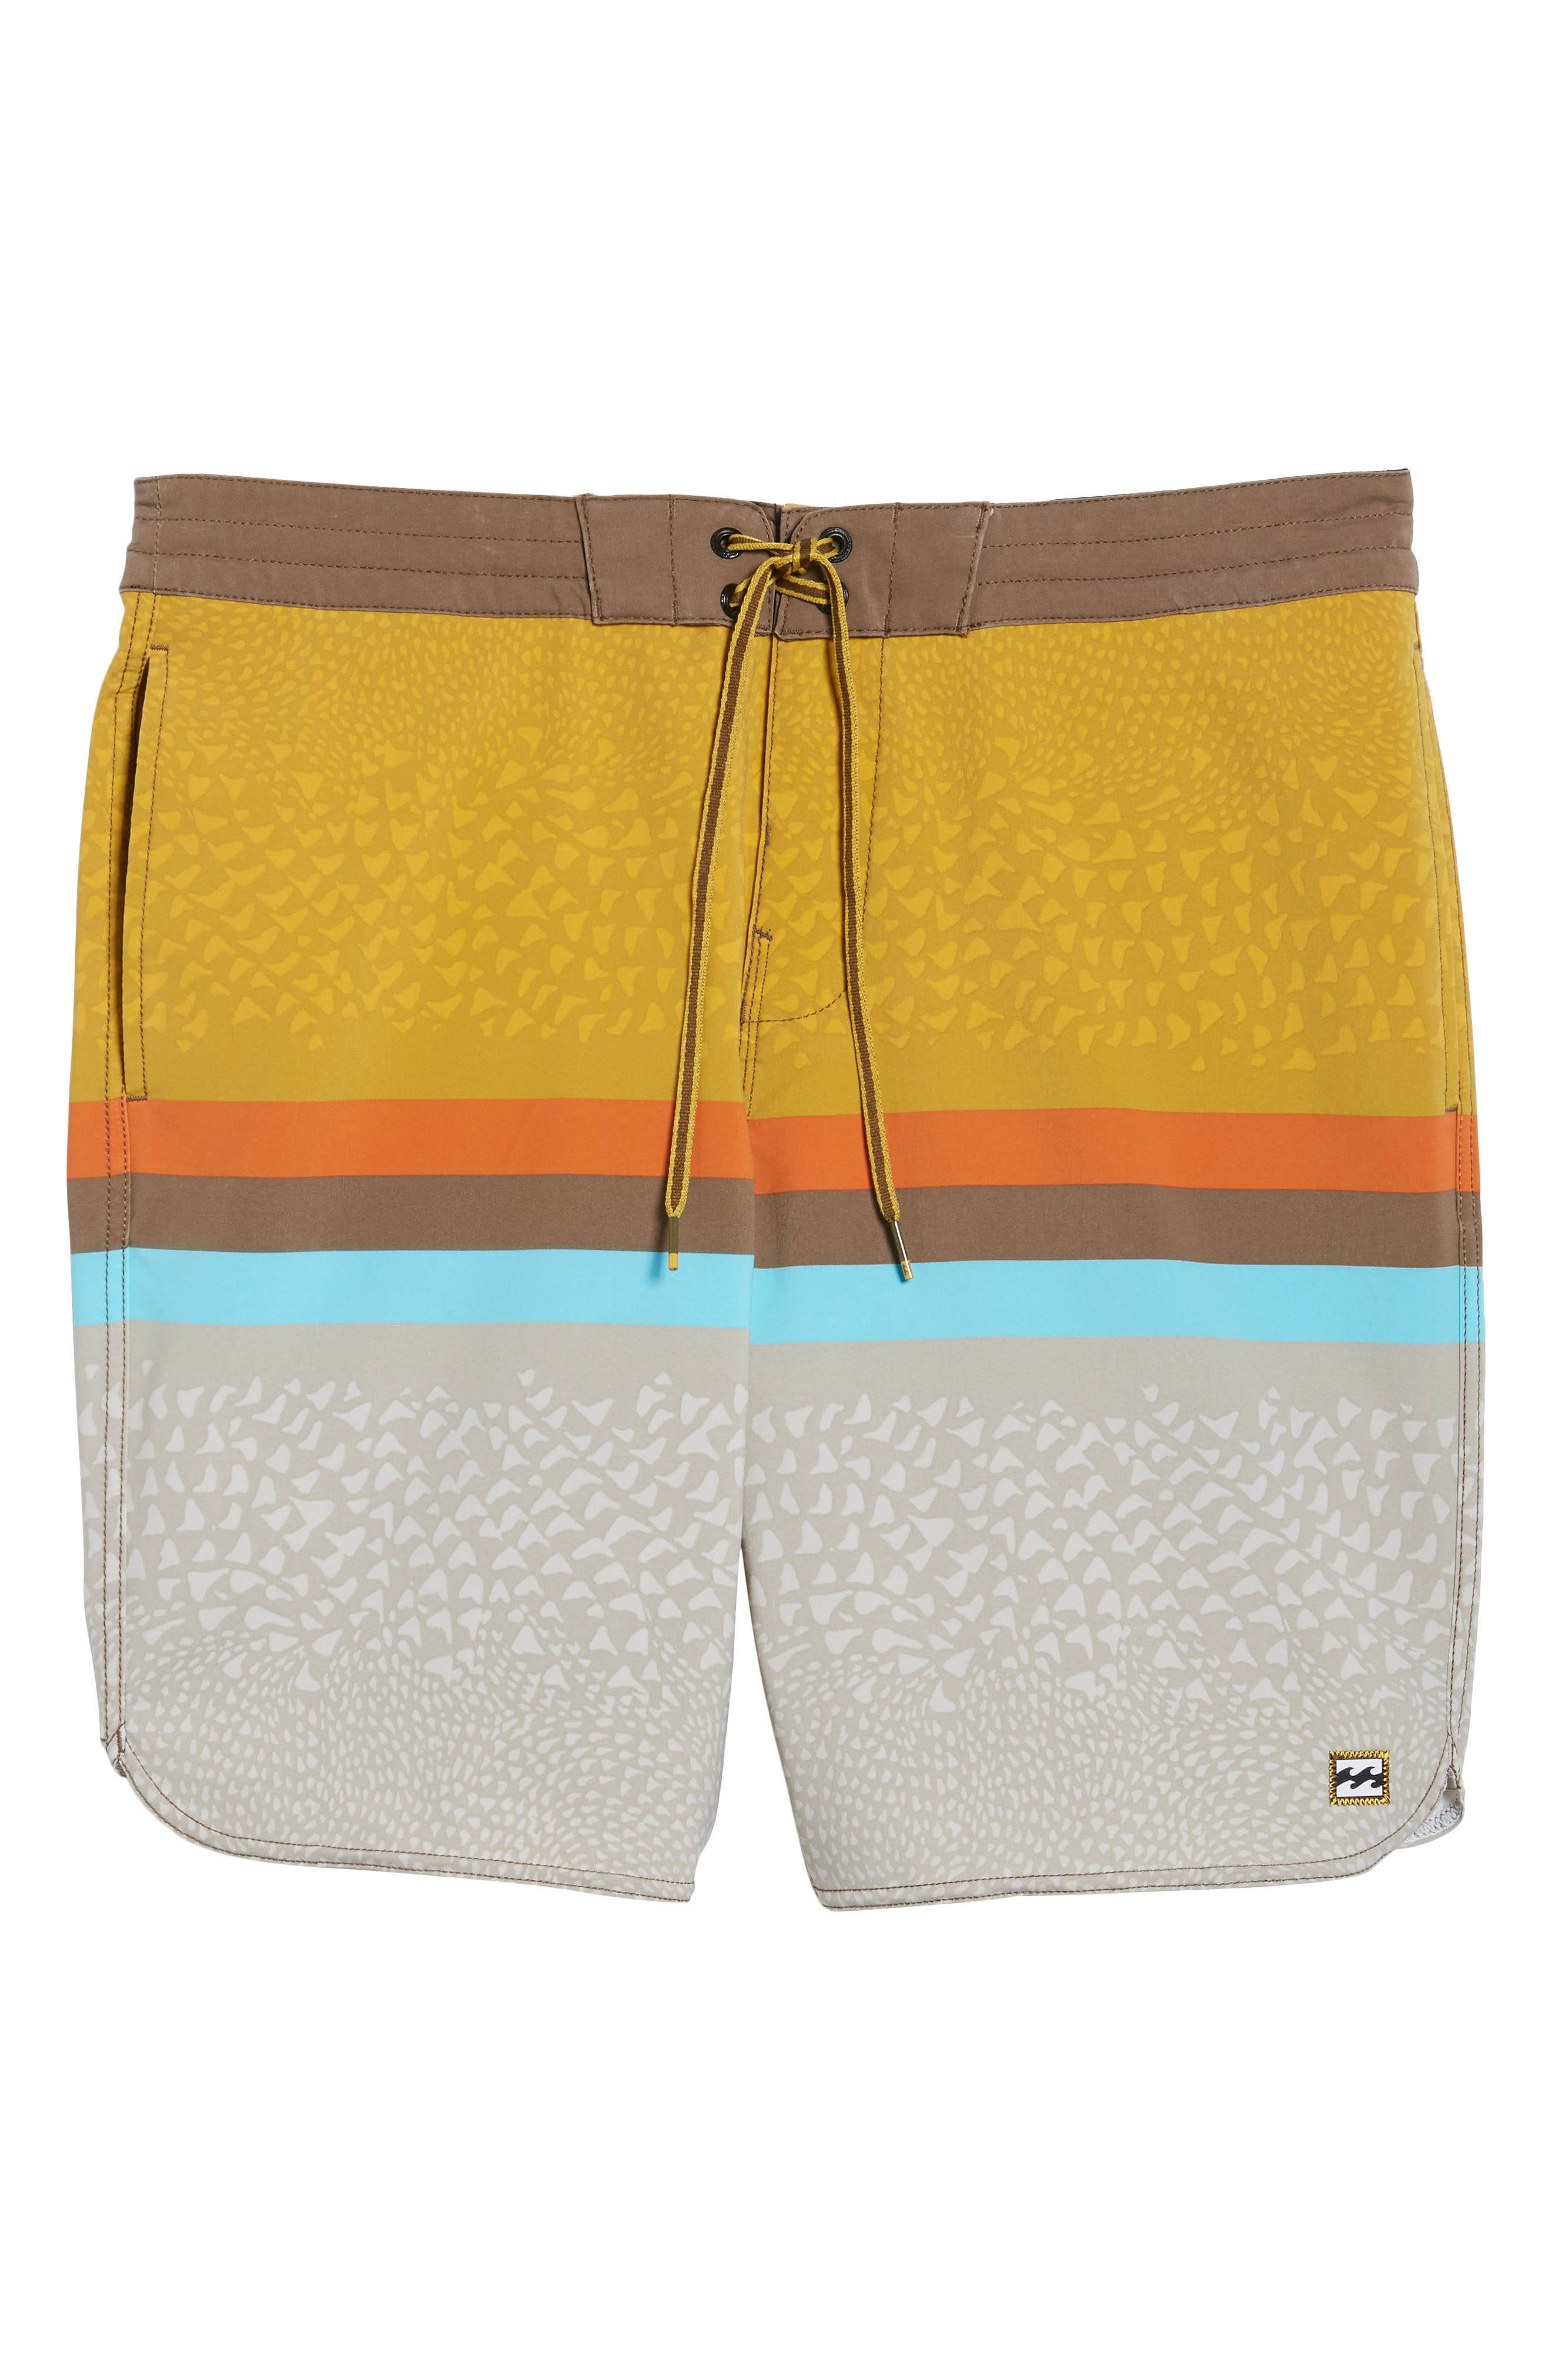 Fifty50 Low Tide Swim Trunks,                             Alternate thumbnail 30, color,